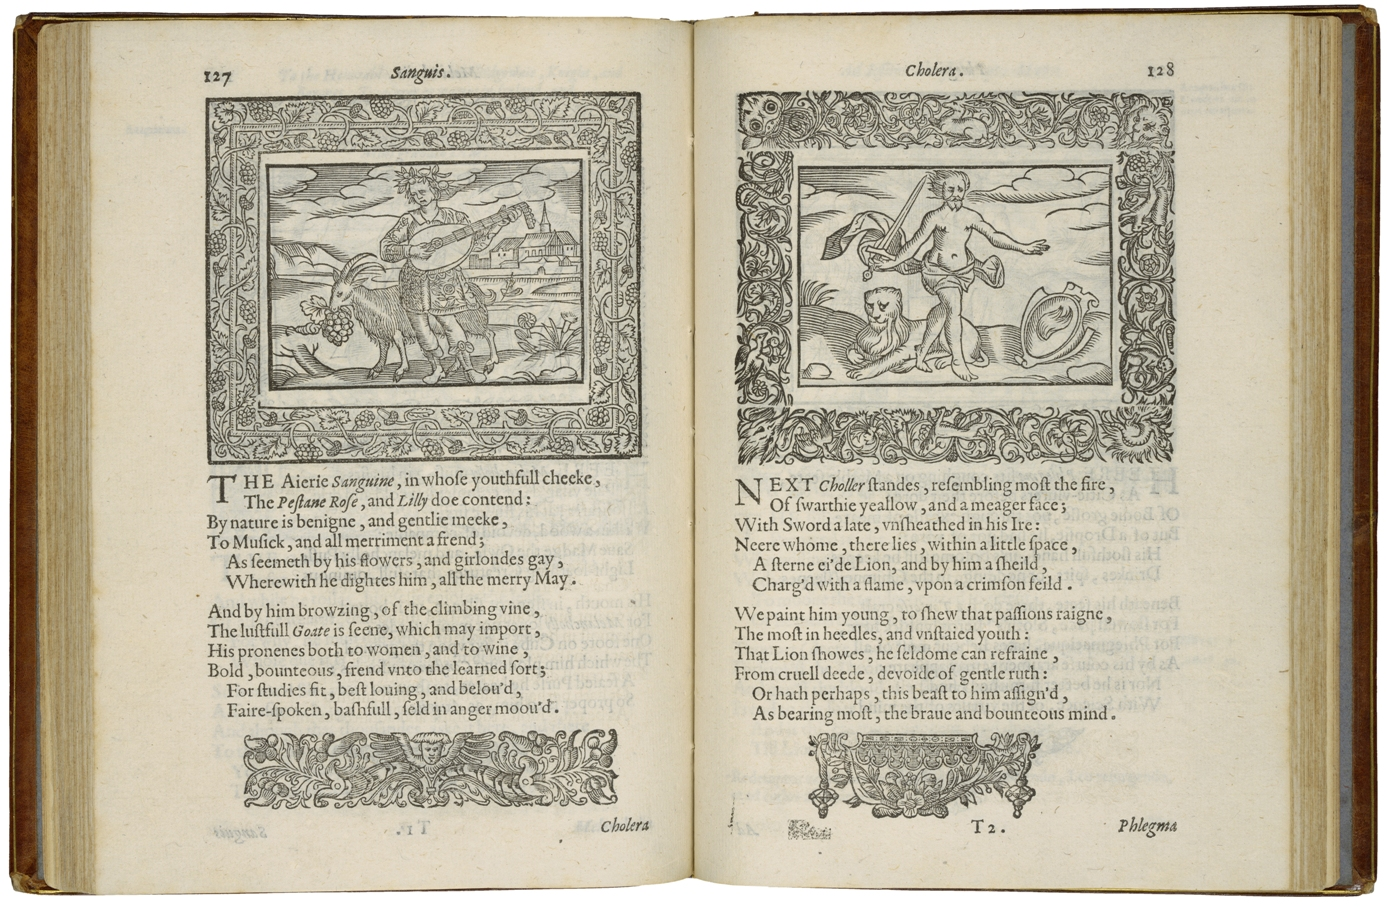 Image of the book Minerva Britanna, 1612. Courtesy Folger Shakespeare Library.